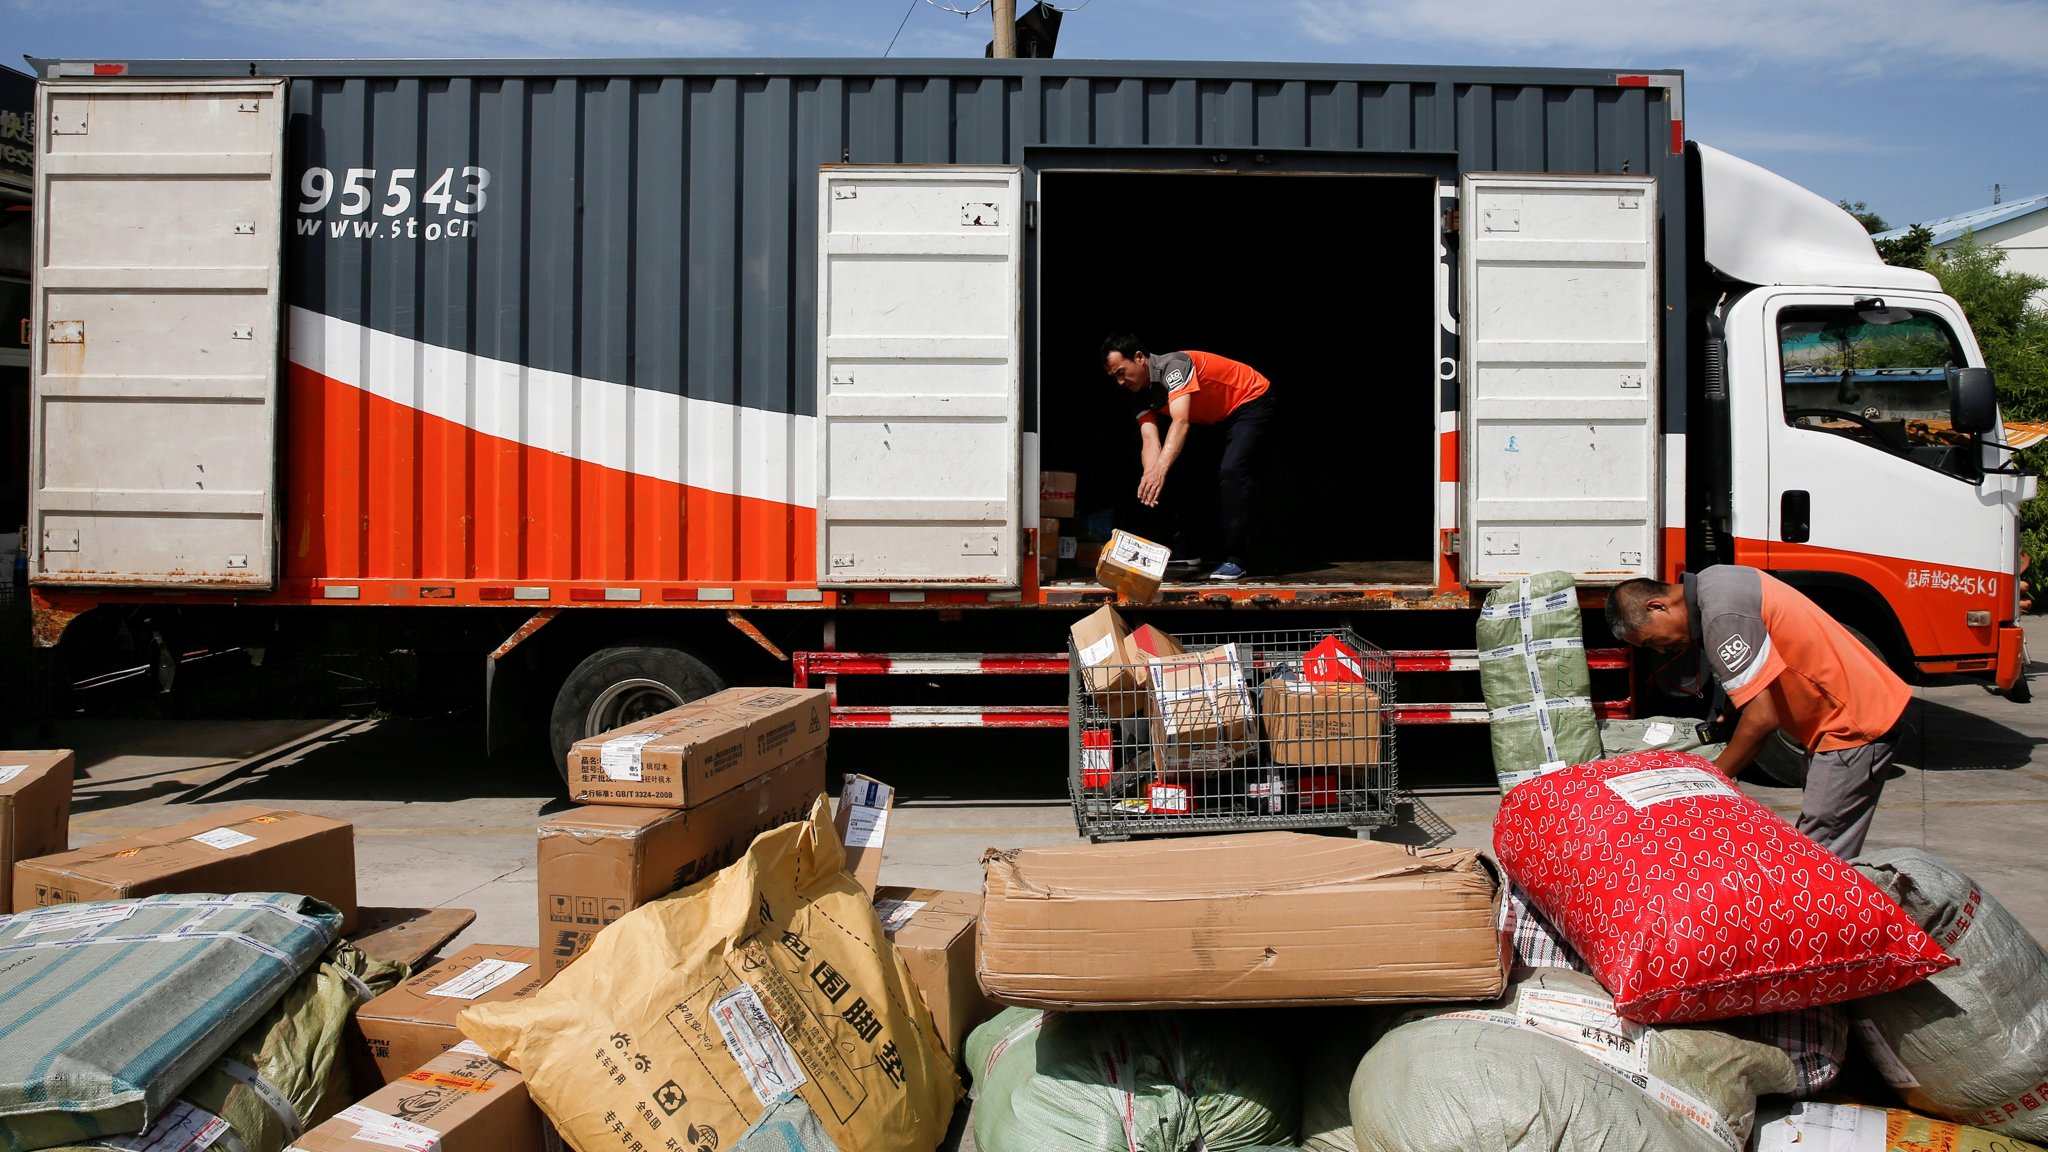 Alibaba tightens grip on China logistics sector | Financial